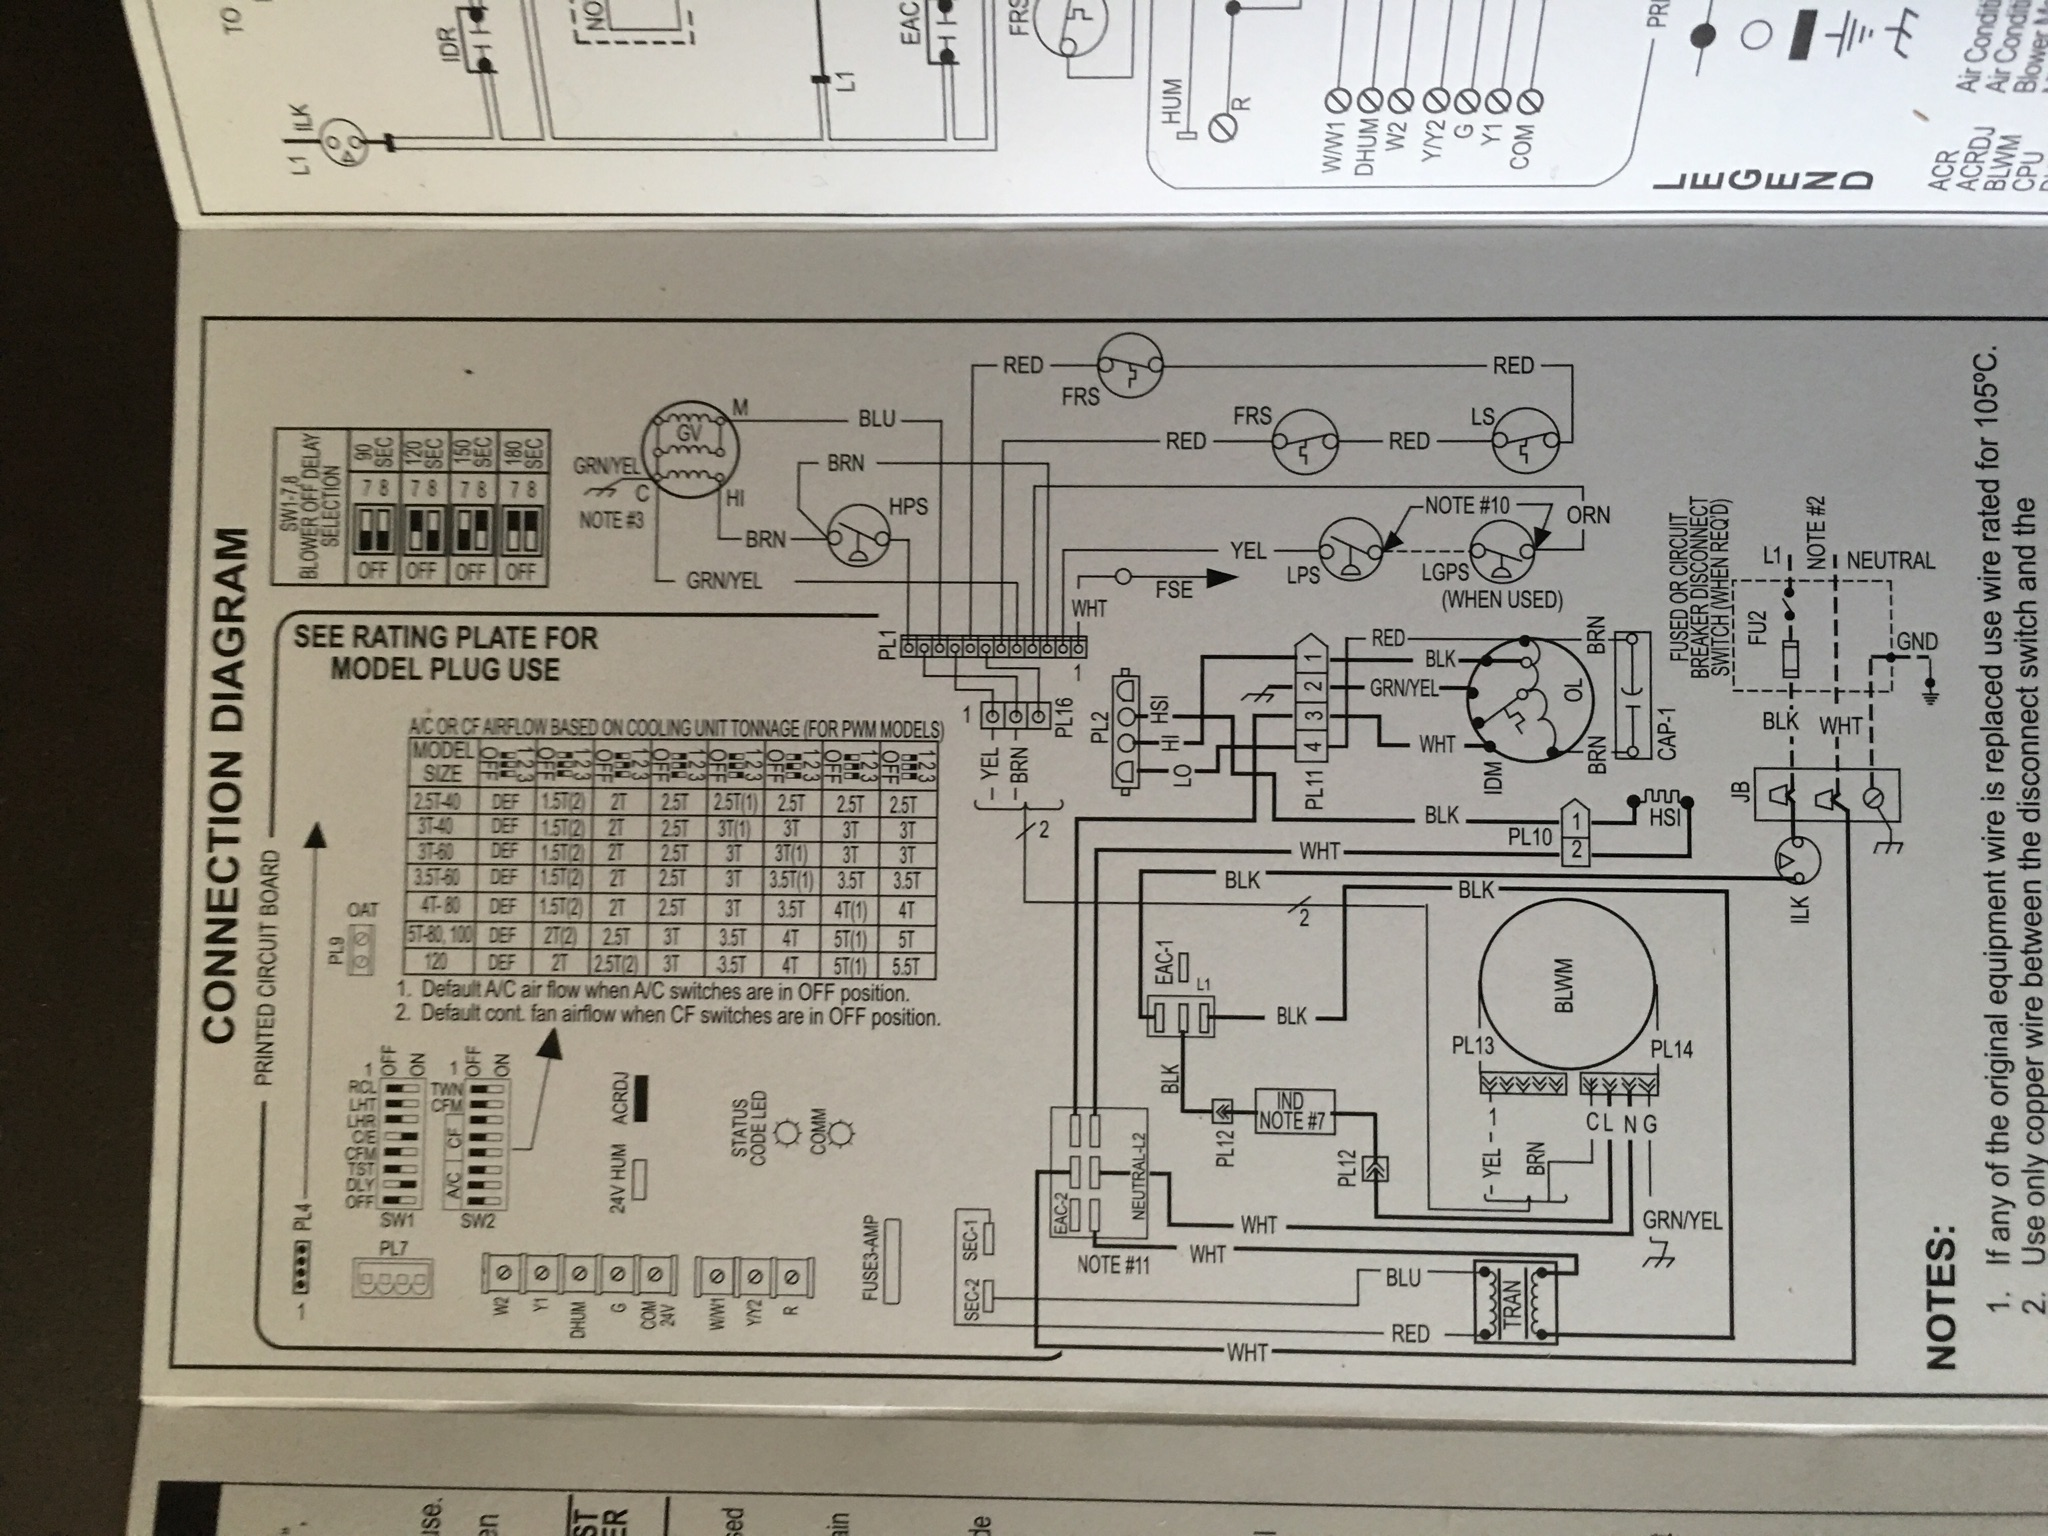 Old Icp Furnace Wiring Diagram Circuit Schematic Package Unit Thermostat Or I Have A Heil Gas G9mve And Honeywell Miller Oil Connection